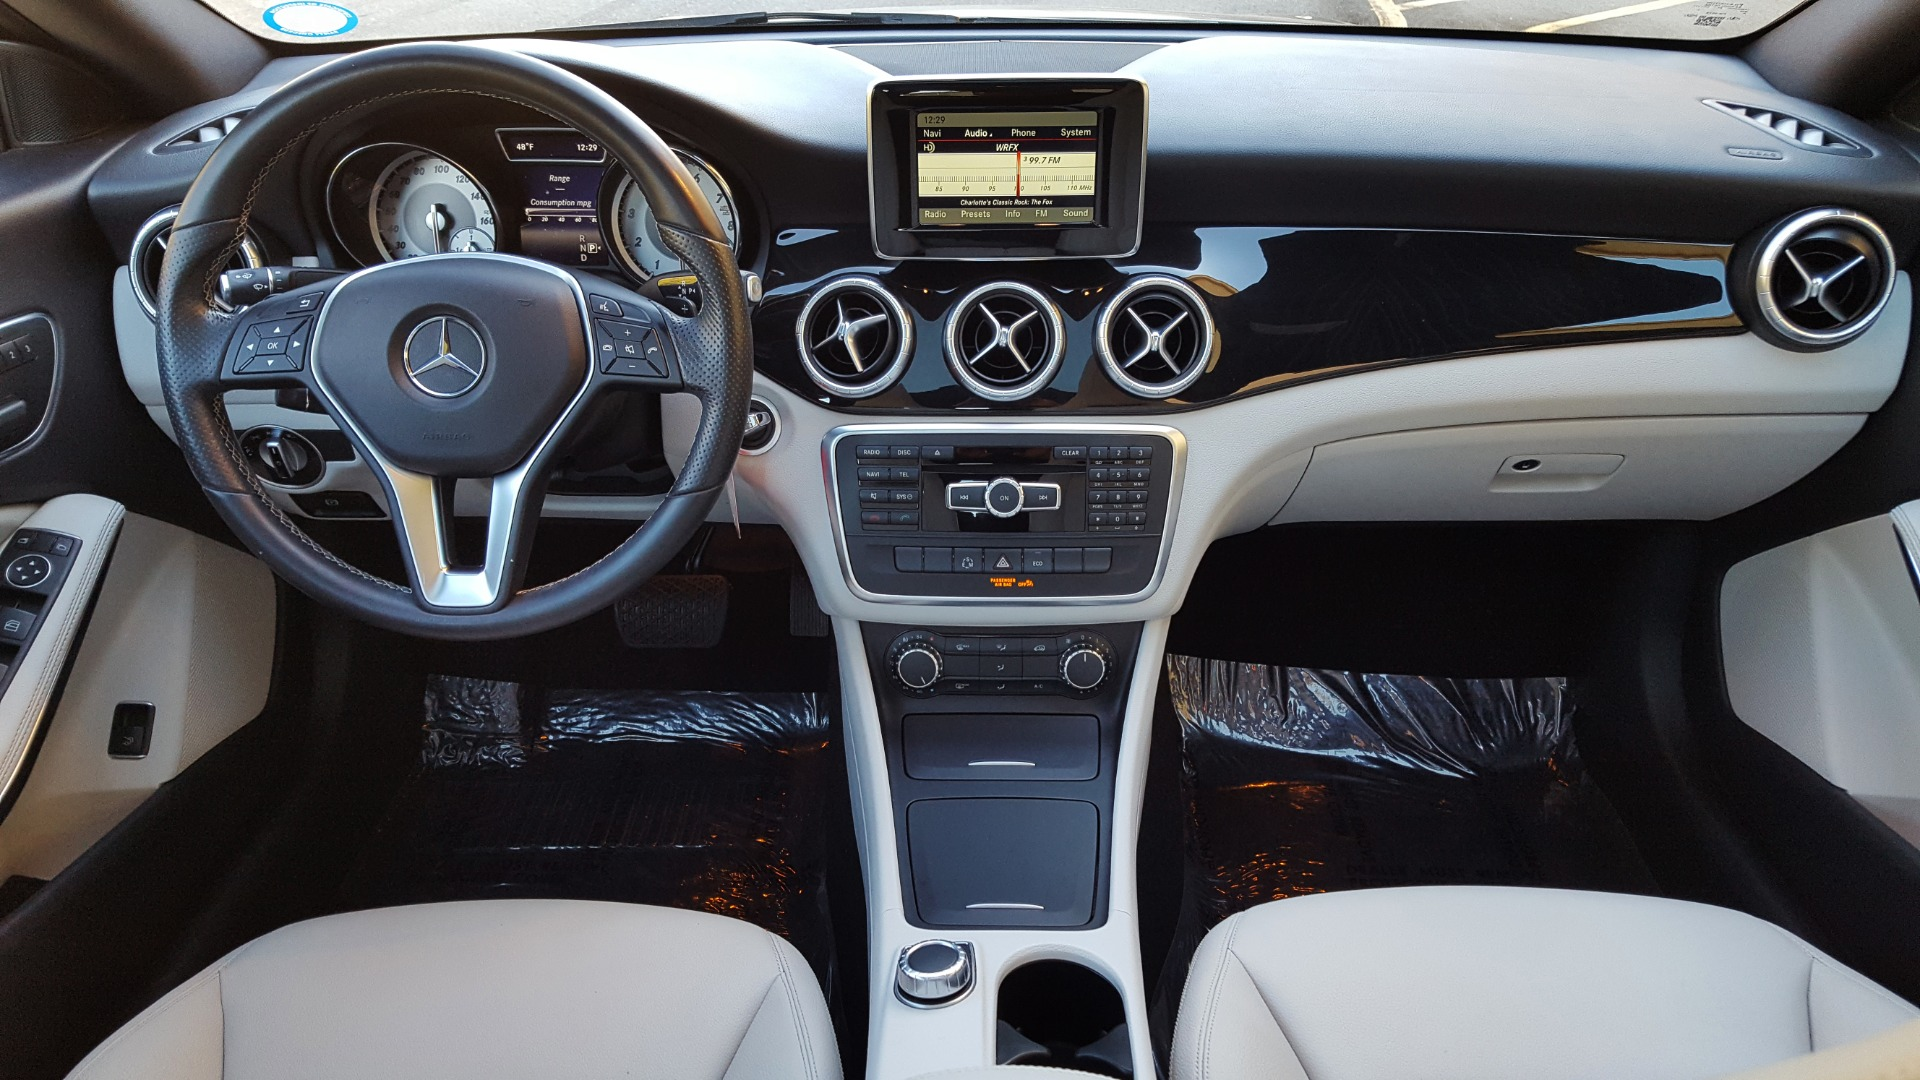 Used 2014 Mercedes-Benz CLA-CLASS CLA 250 / NAV / PANO-ROOF / BLIND SPOT ASSIST / XENON HEADLIGHTS for sale $19,995 at Formula Imports in Charlotte NC 28227 65